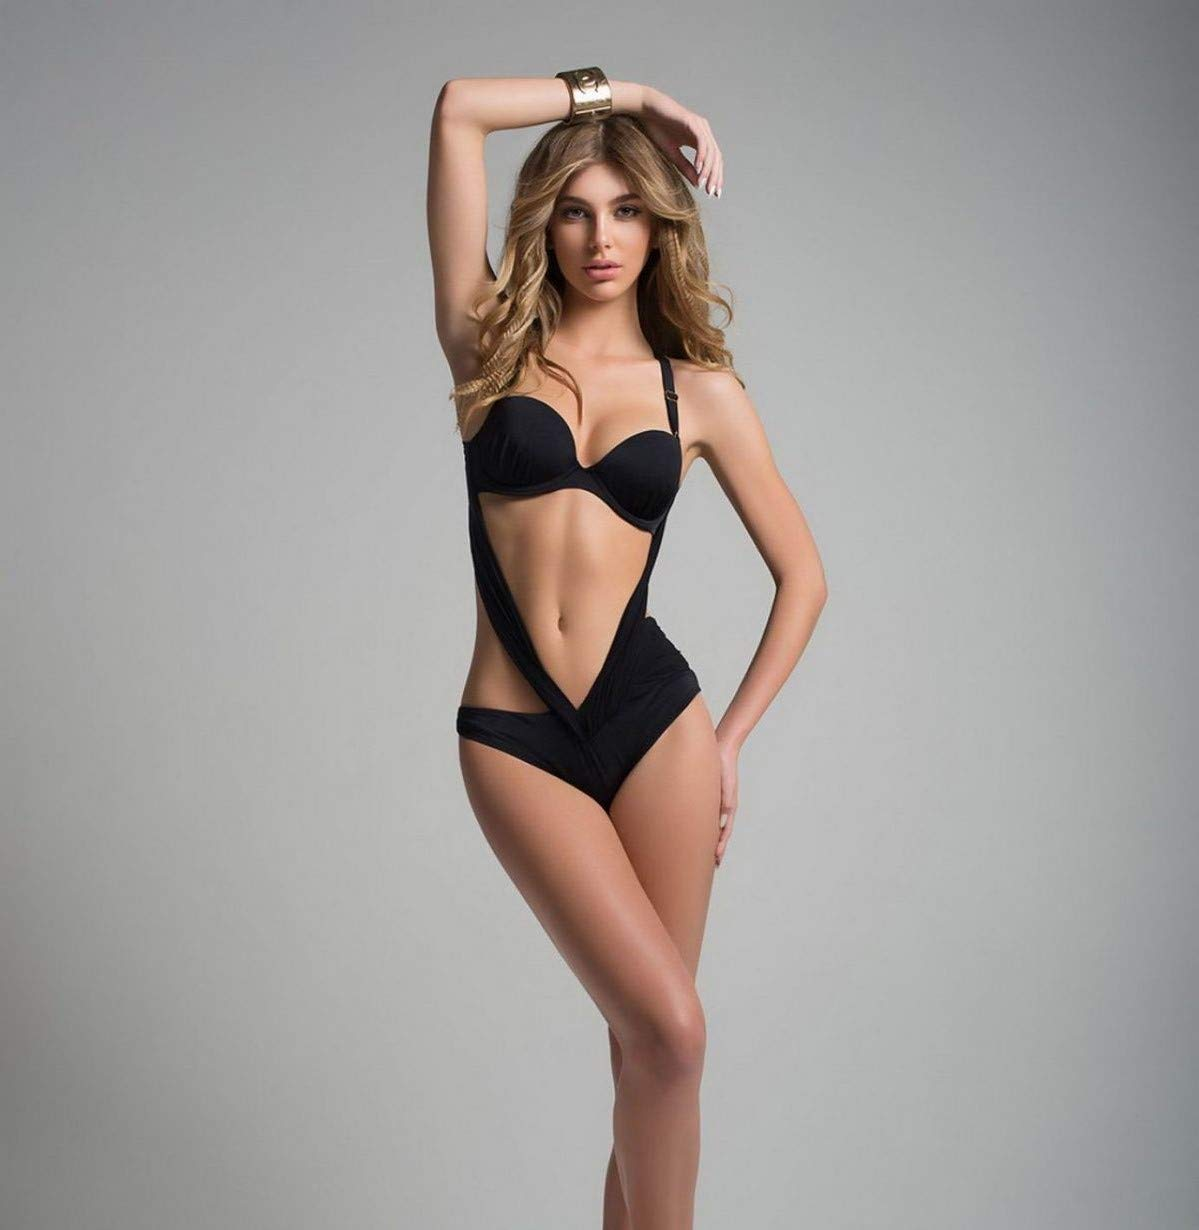 Camila Morrone Hot Black Swimsuit - Camila Morrone Hot Black Swimsuit